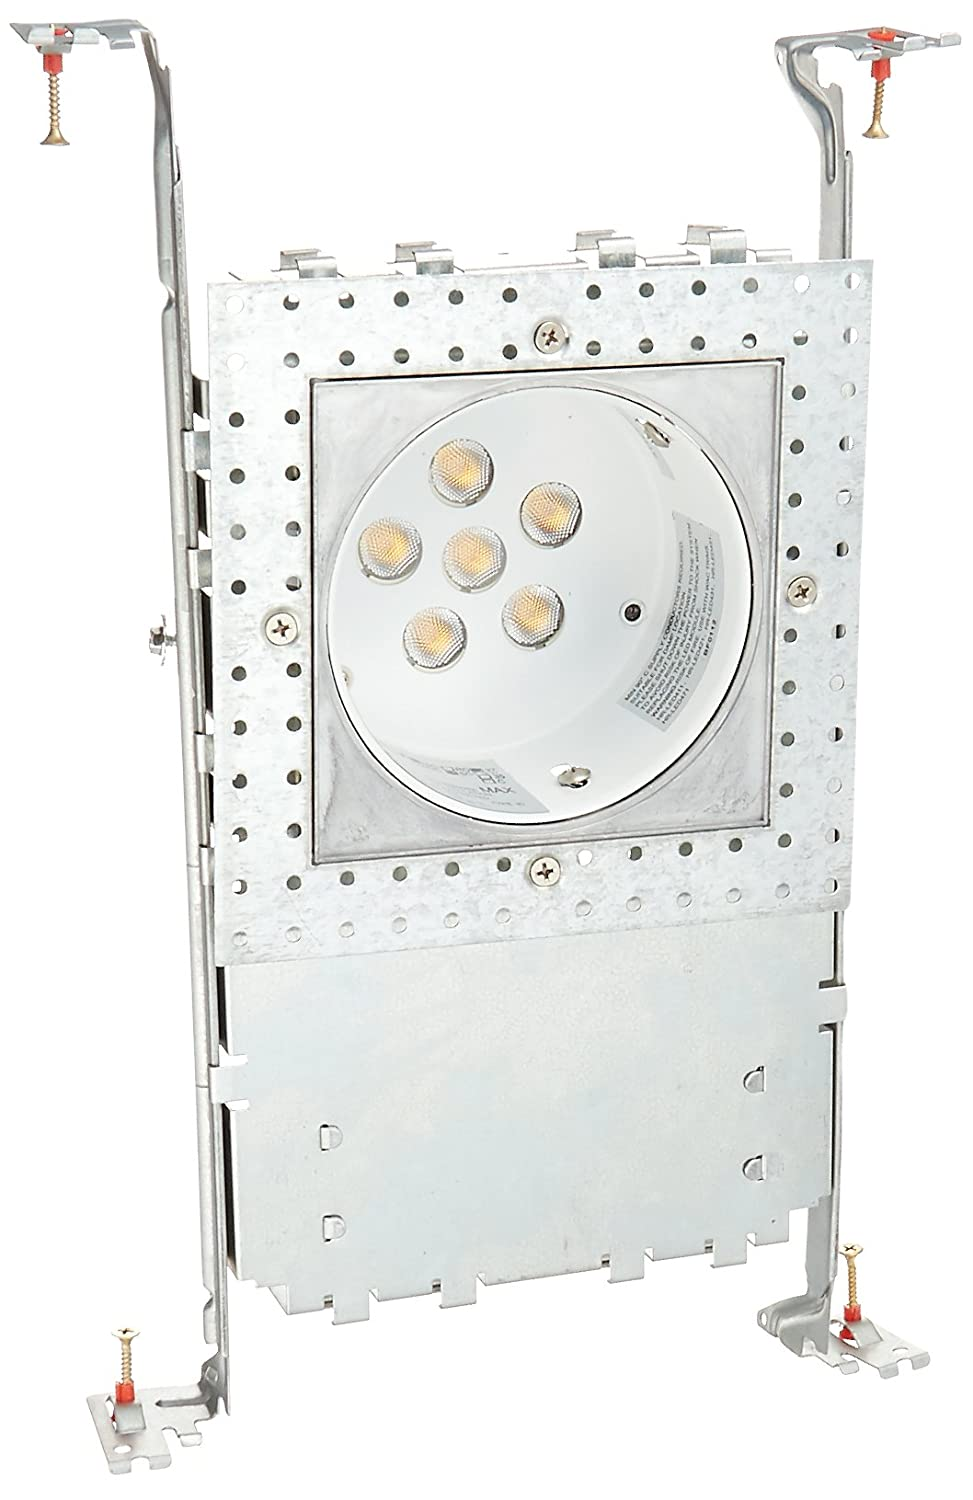 Wac lighting hr hl 4 low voltage new construction housing recessed can light - Wac Lighting Hr Led418 Nic Sq27 Ledme 4 Inch Recessed Downlight New Construction Invisible Trim Ic Rated Housing 2700k Recessed Light Fixture